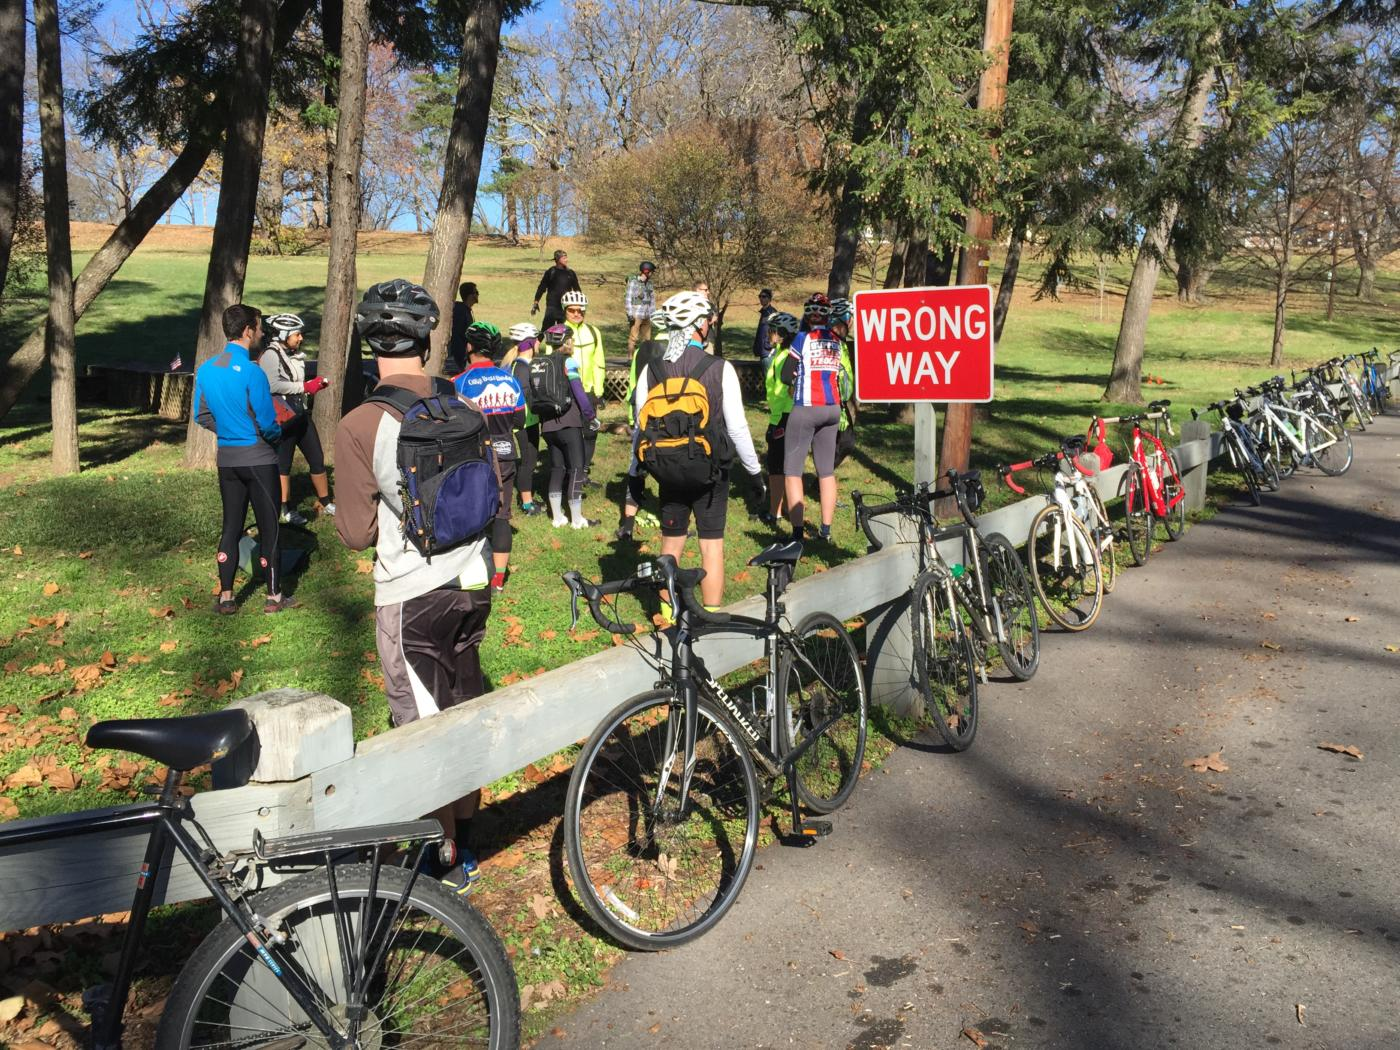 Cranksgiving in Roanoke